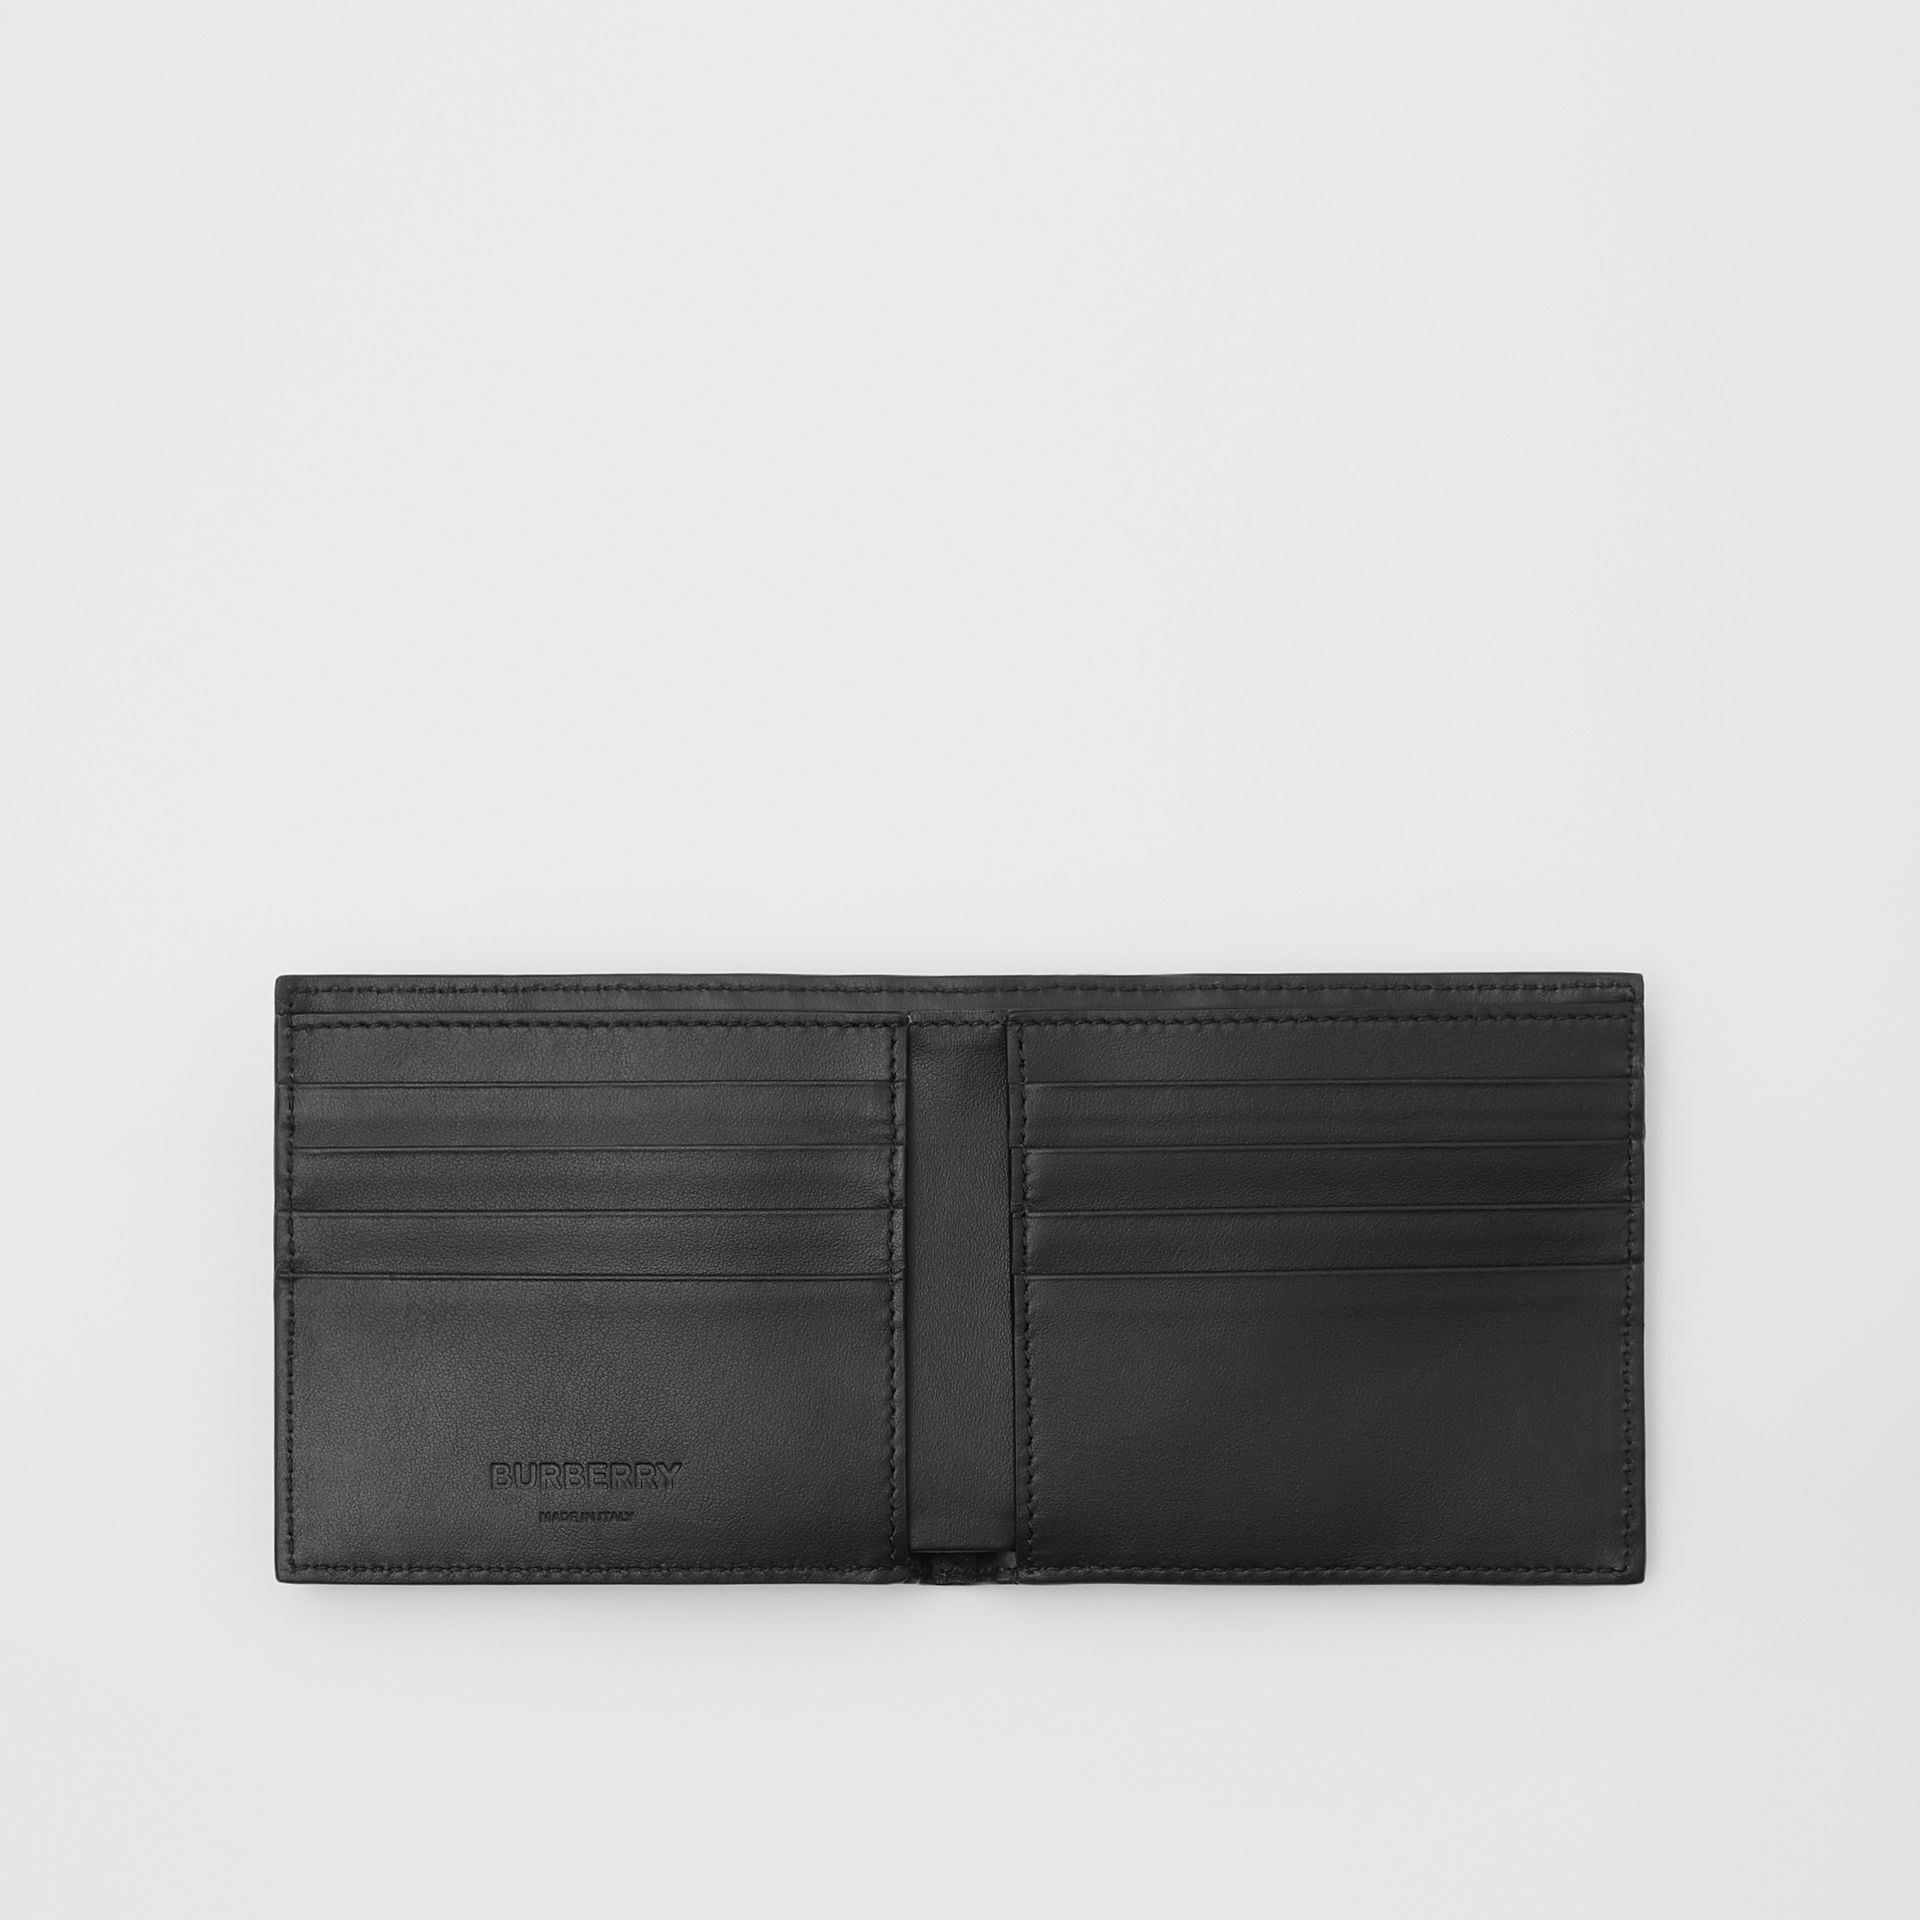 Monogram Leather International Bifold Wallet in Black - Men | Burberry United States - gallery image 2